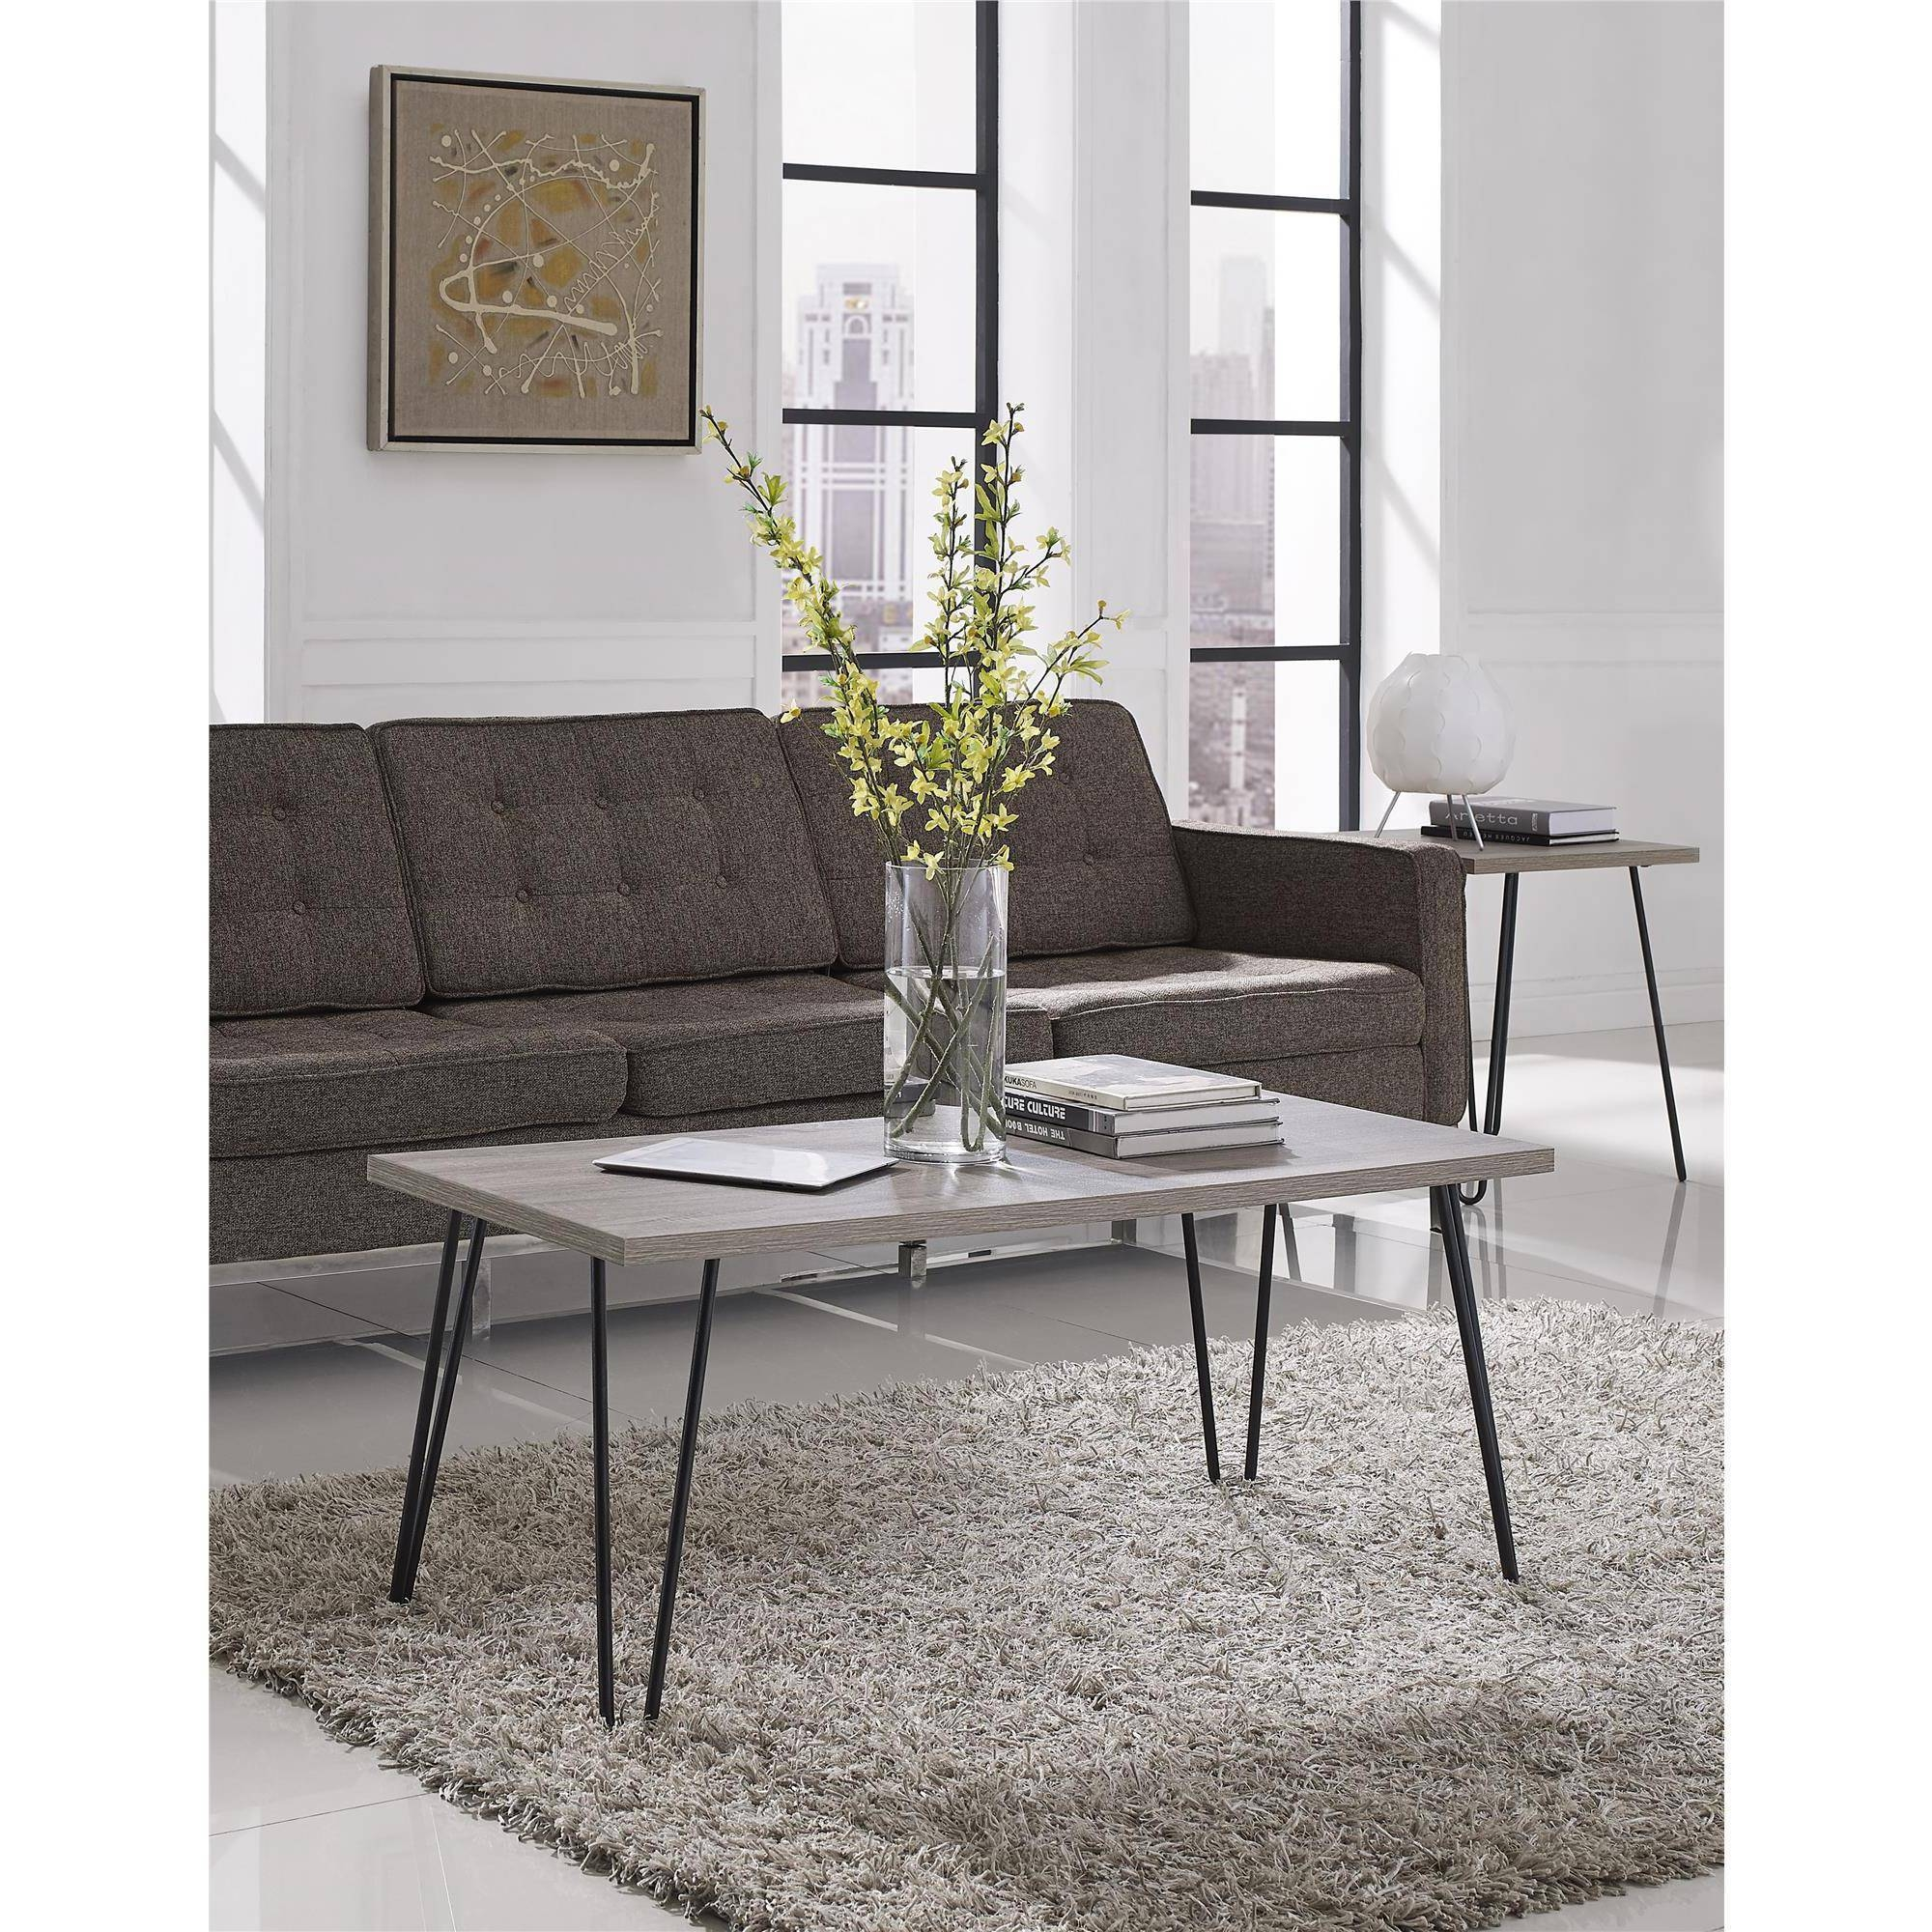 Ameriwood Home Owen Retro Coffee Table, Distressed Gray Oak inside White And Oak Coffee Tables (Image 1 of 30)